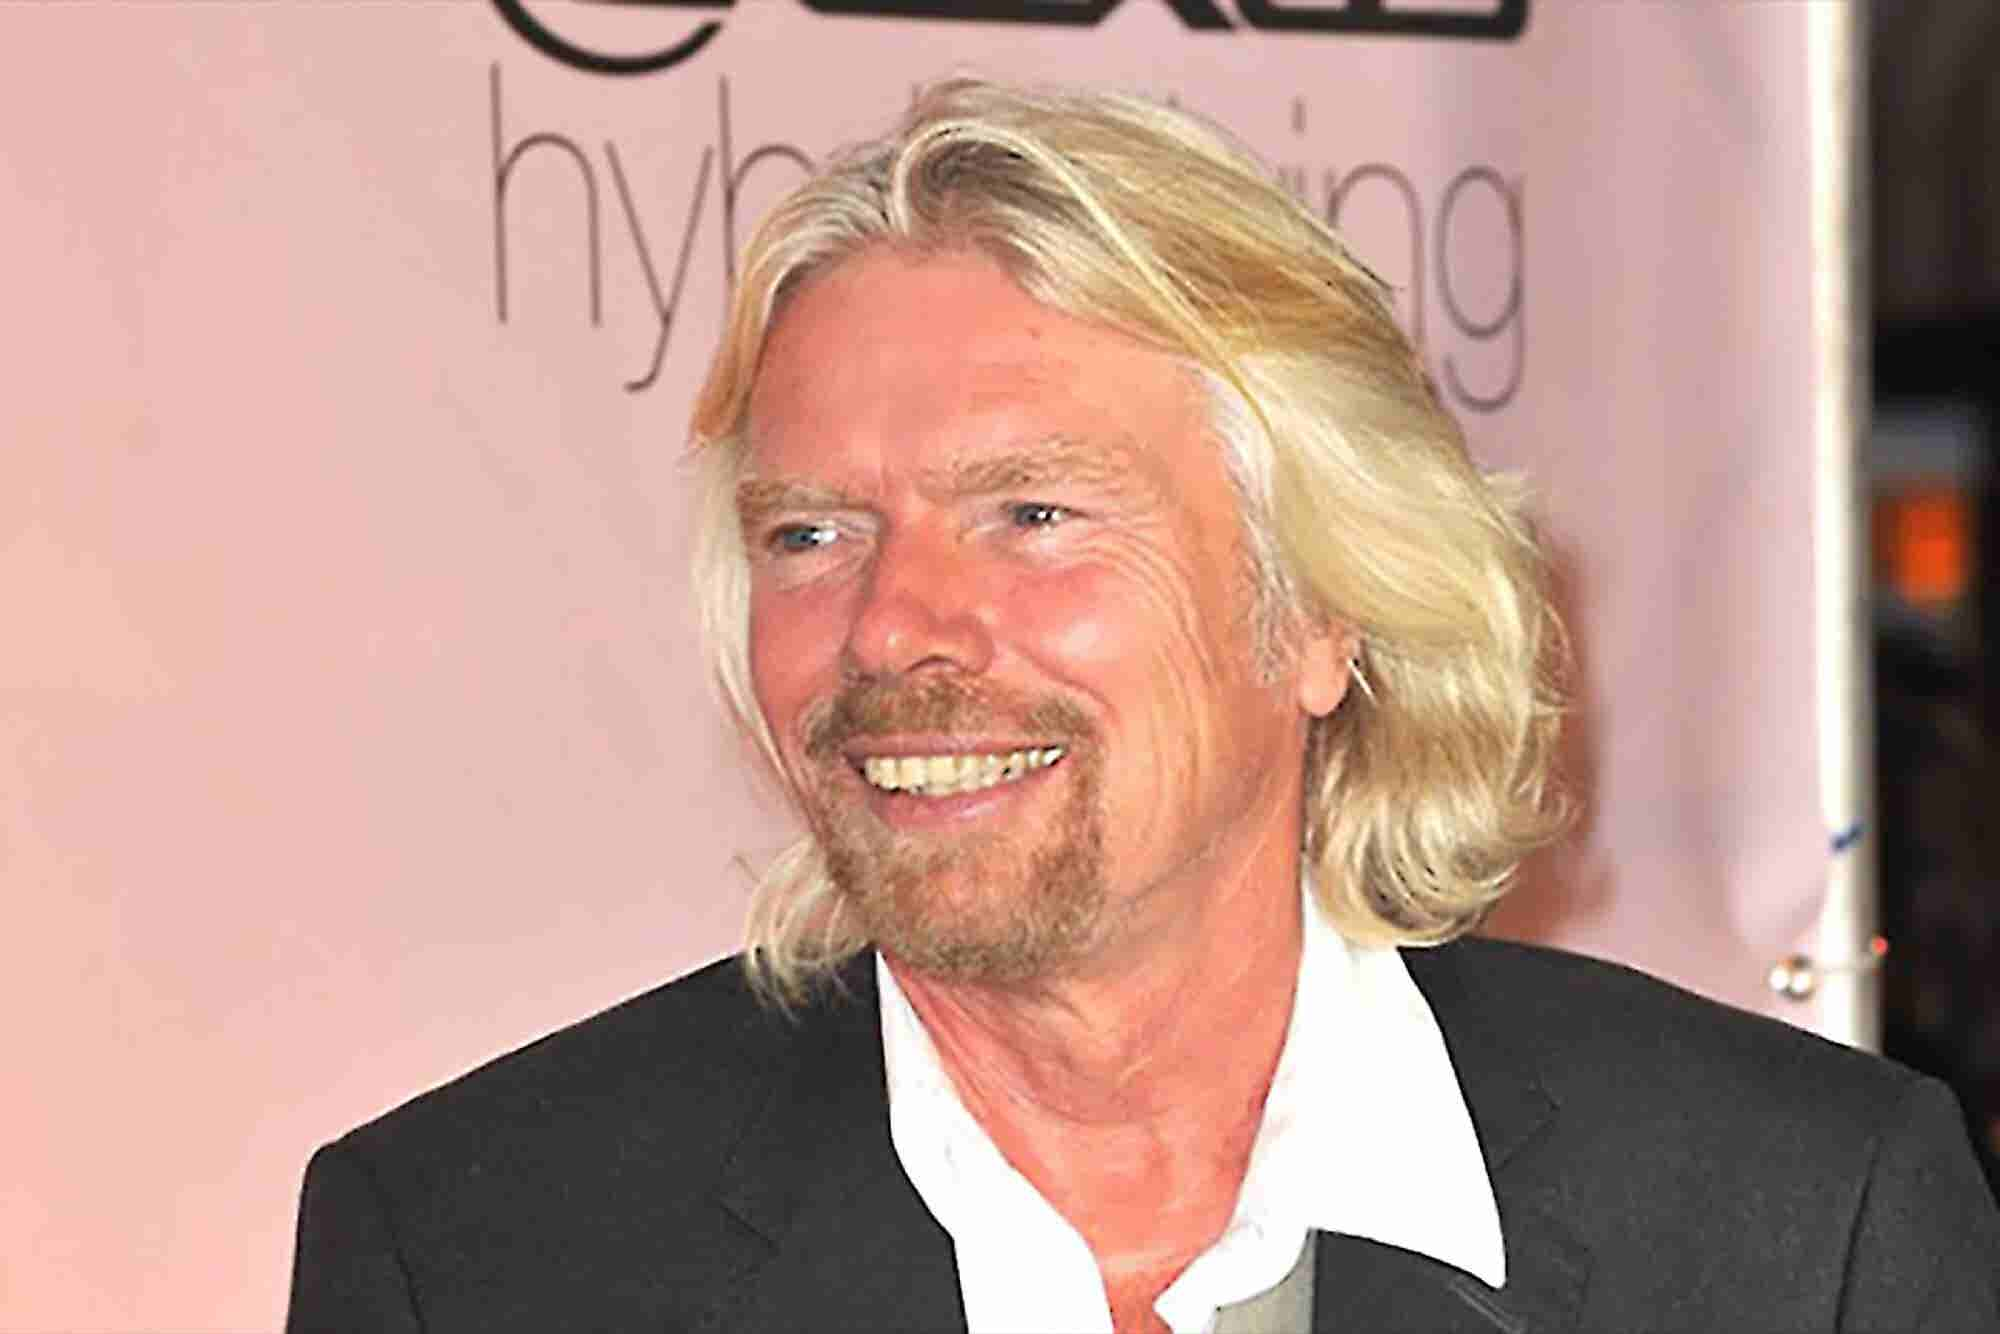 Richard Branson Shares Tips for a Healthy Lifestyle